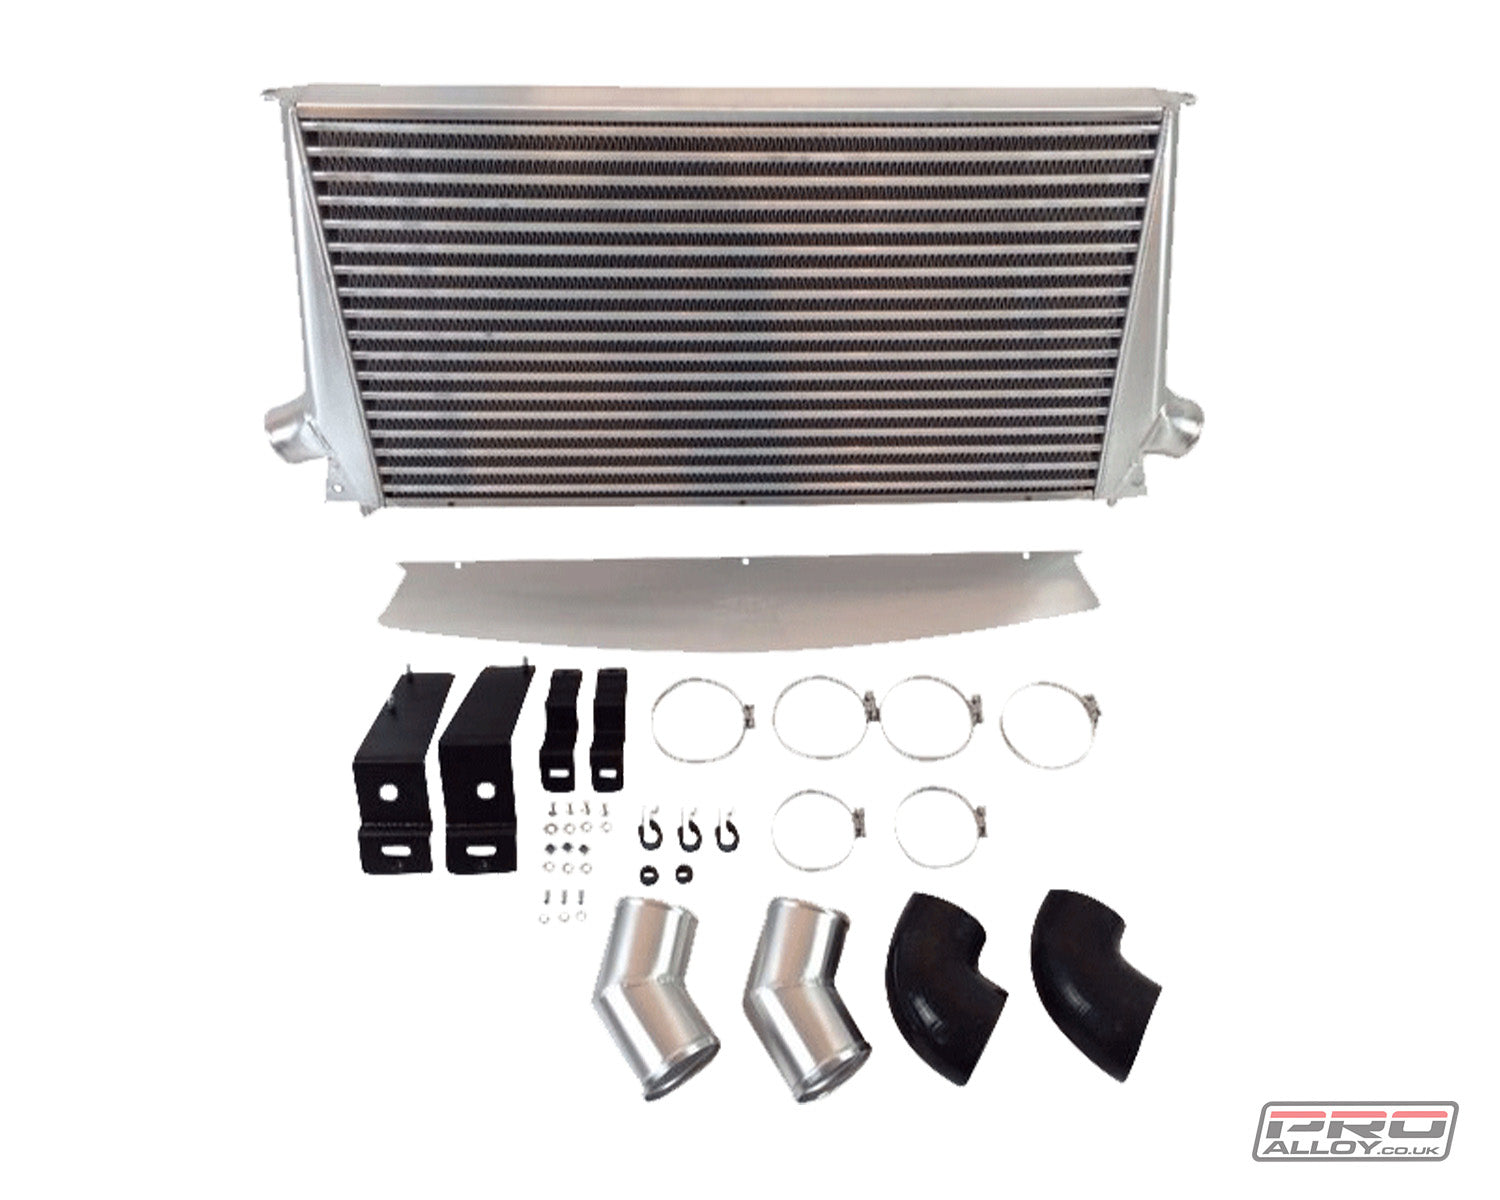 Insignia VXR Intercooler